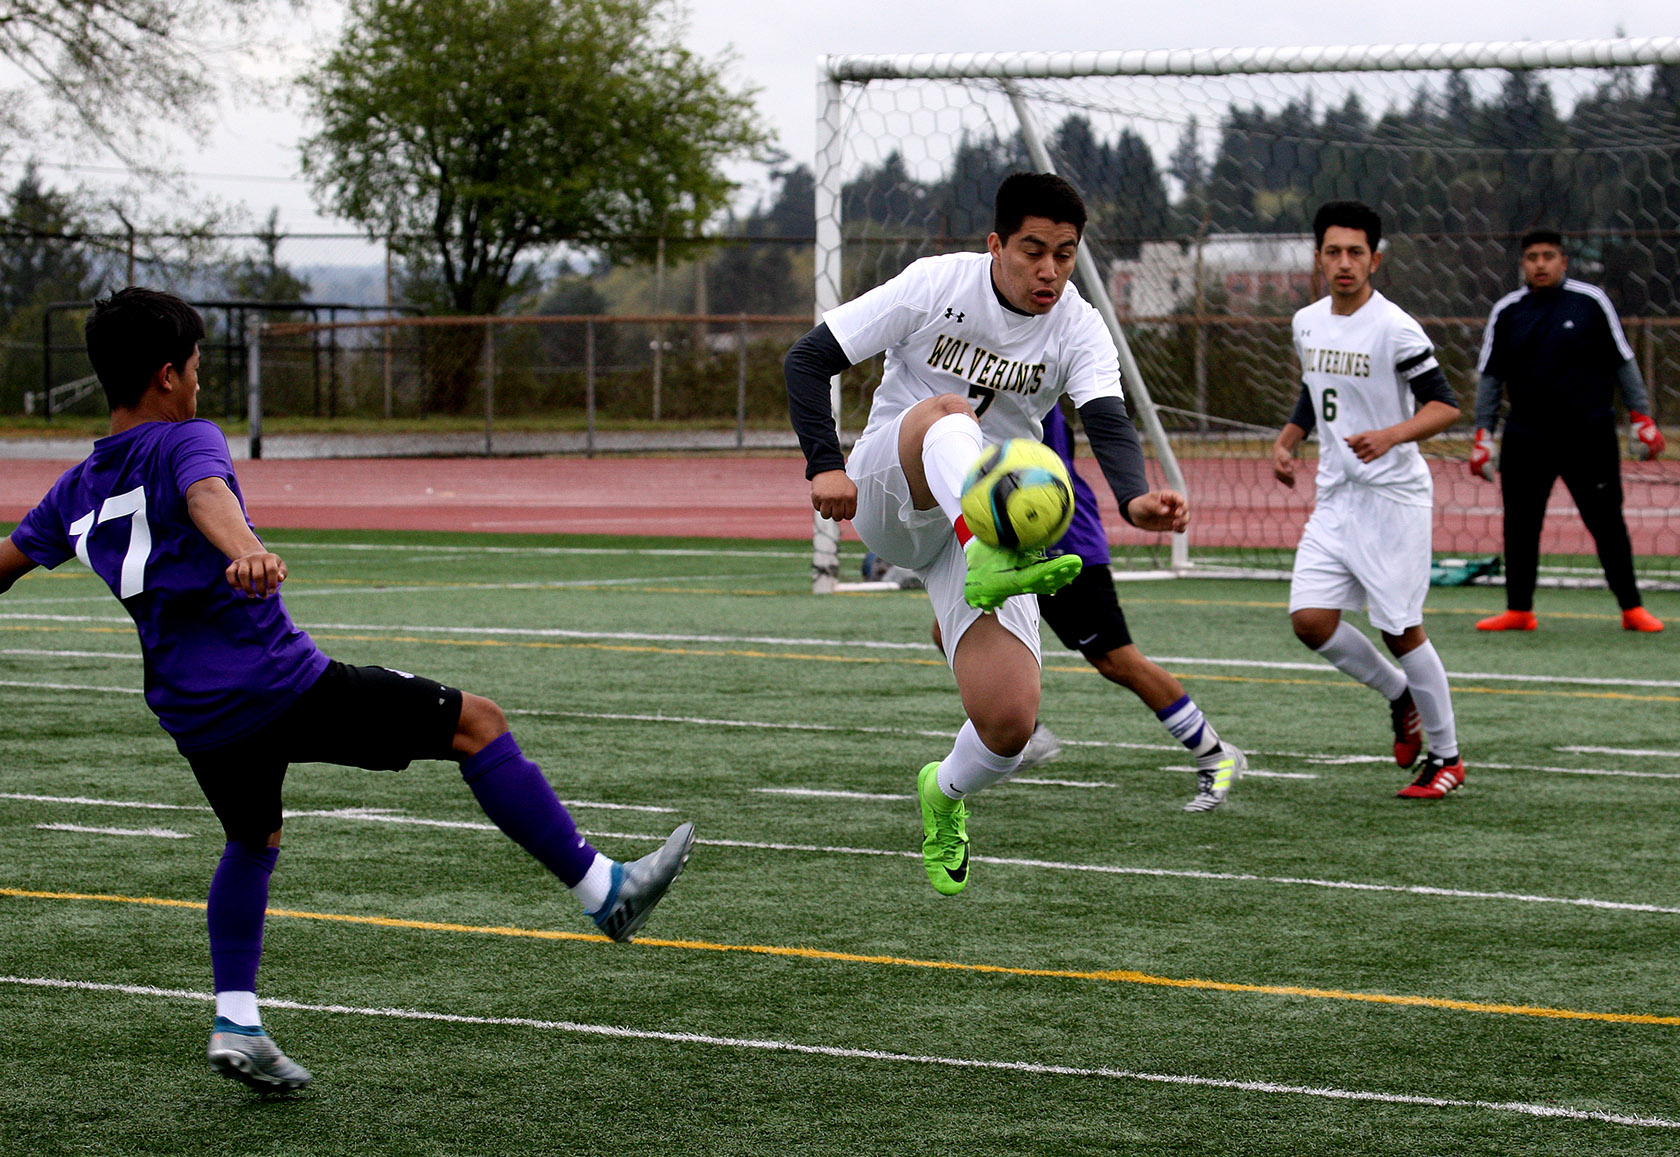 Josue Pedroza of Evergreen does a jump kick to get the ball away from the goal.